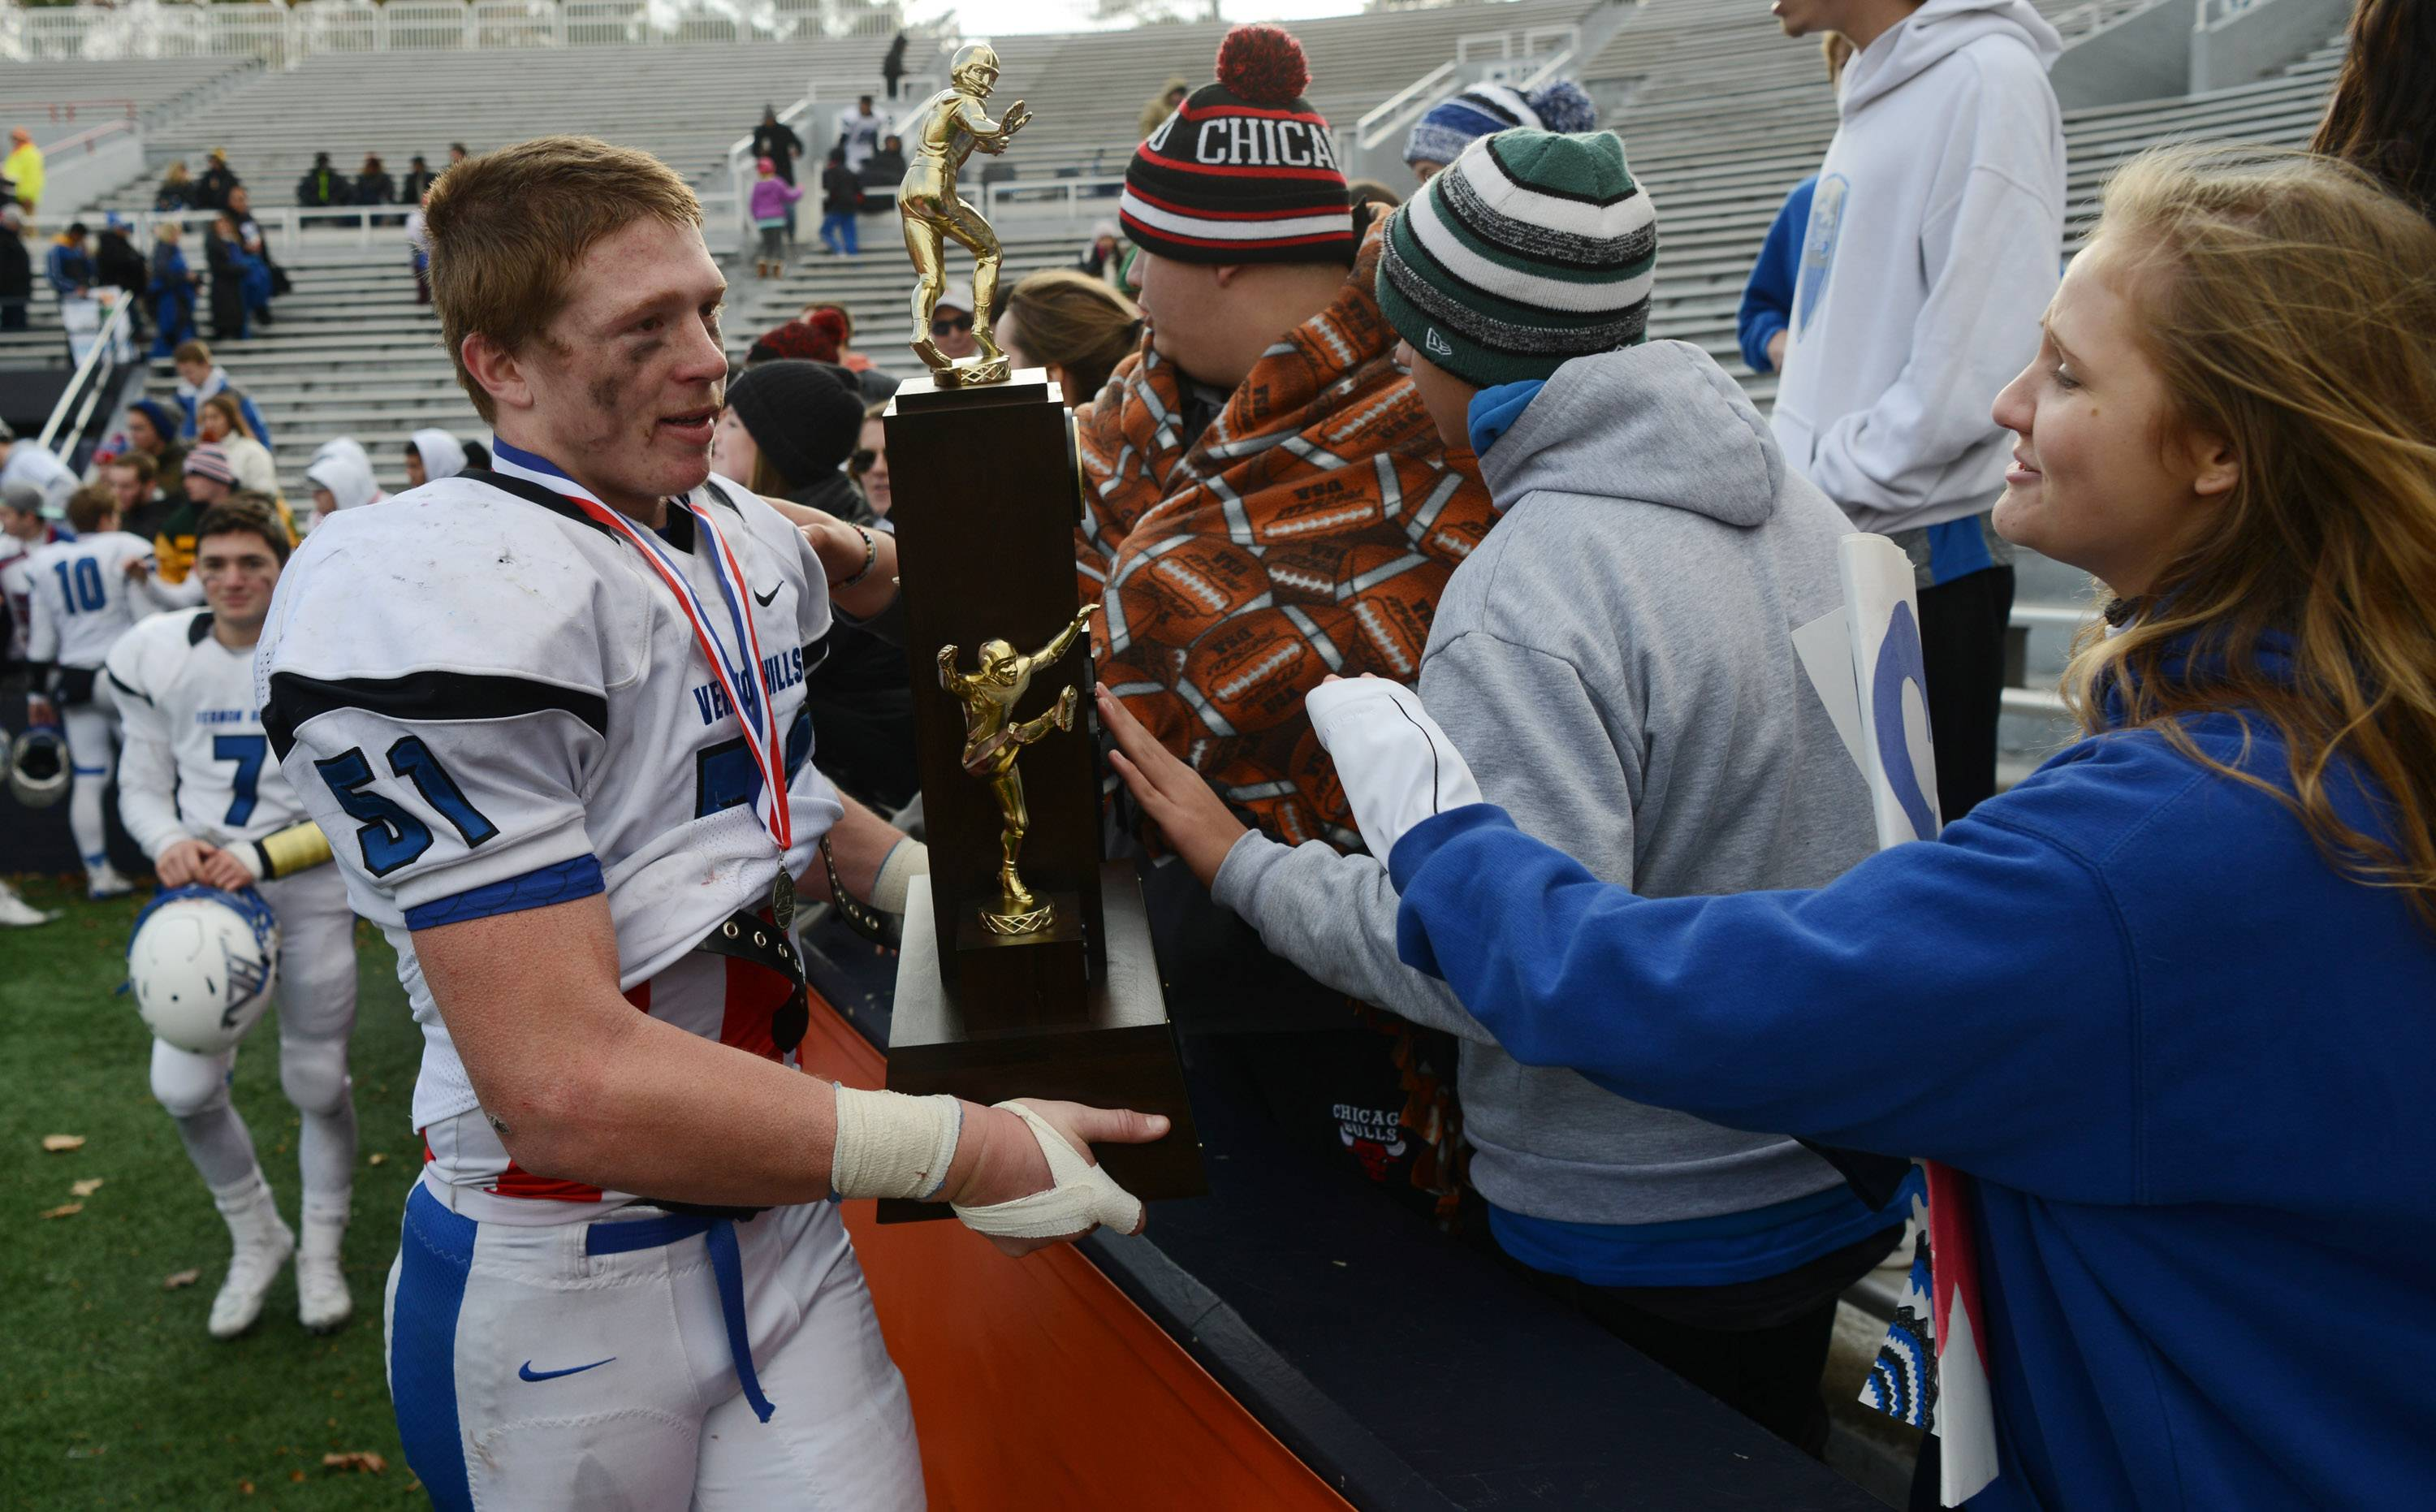 Vernon Hills' Chick Smith shows the second-place trophy to fans following the Cougars' loss to Peoria in last weekend's Class 5A championship game at Memorial Stadium in Champaign.